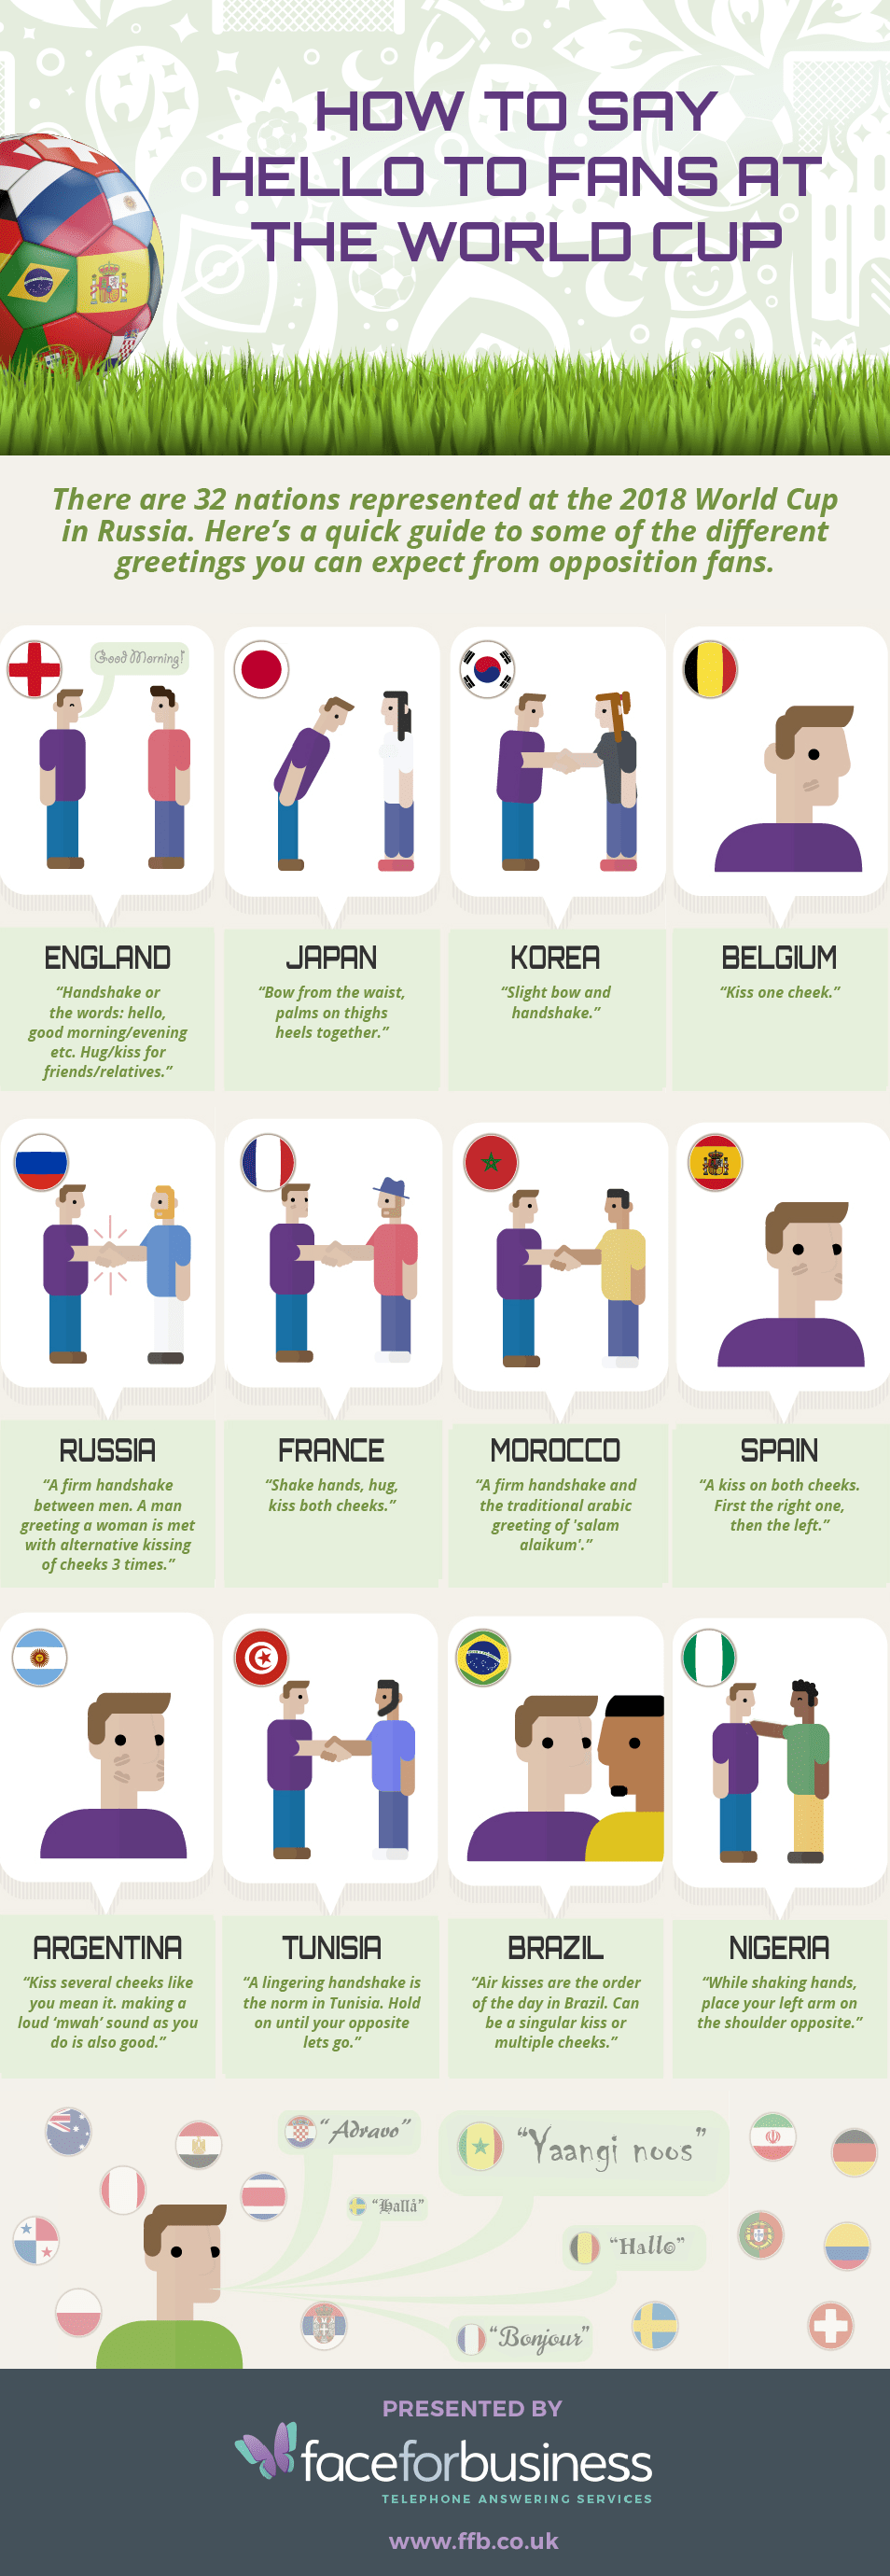 World Cup 2018 InfoGraphic by Face for Business June 2018